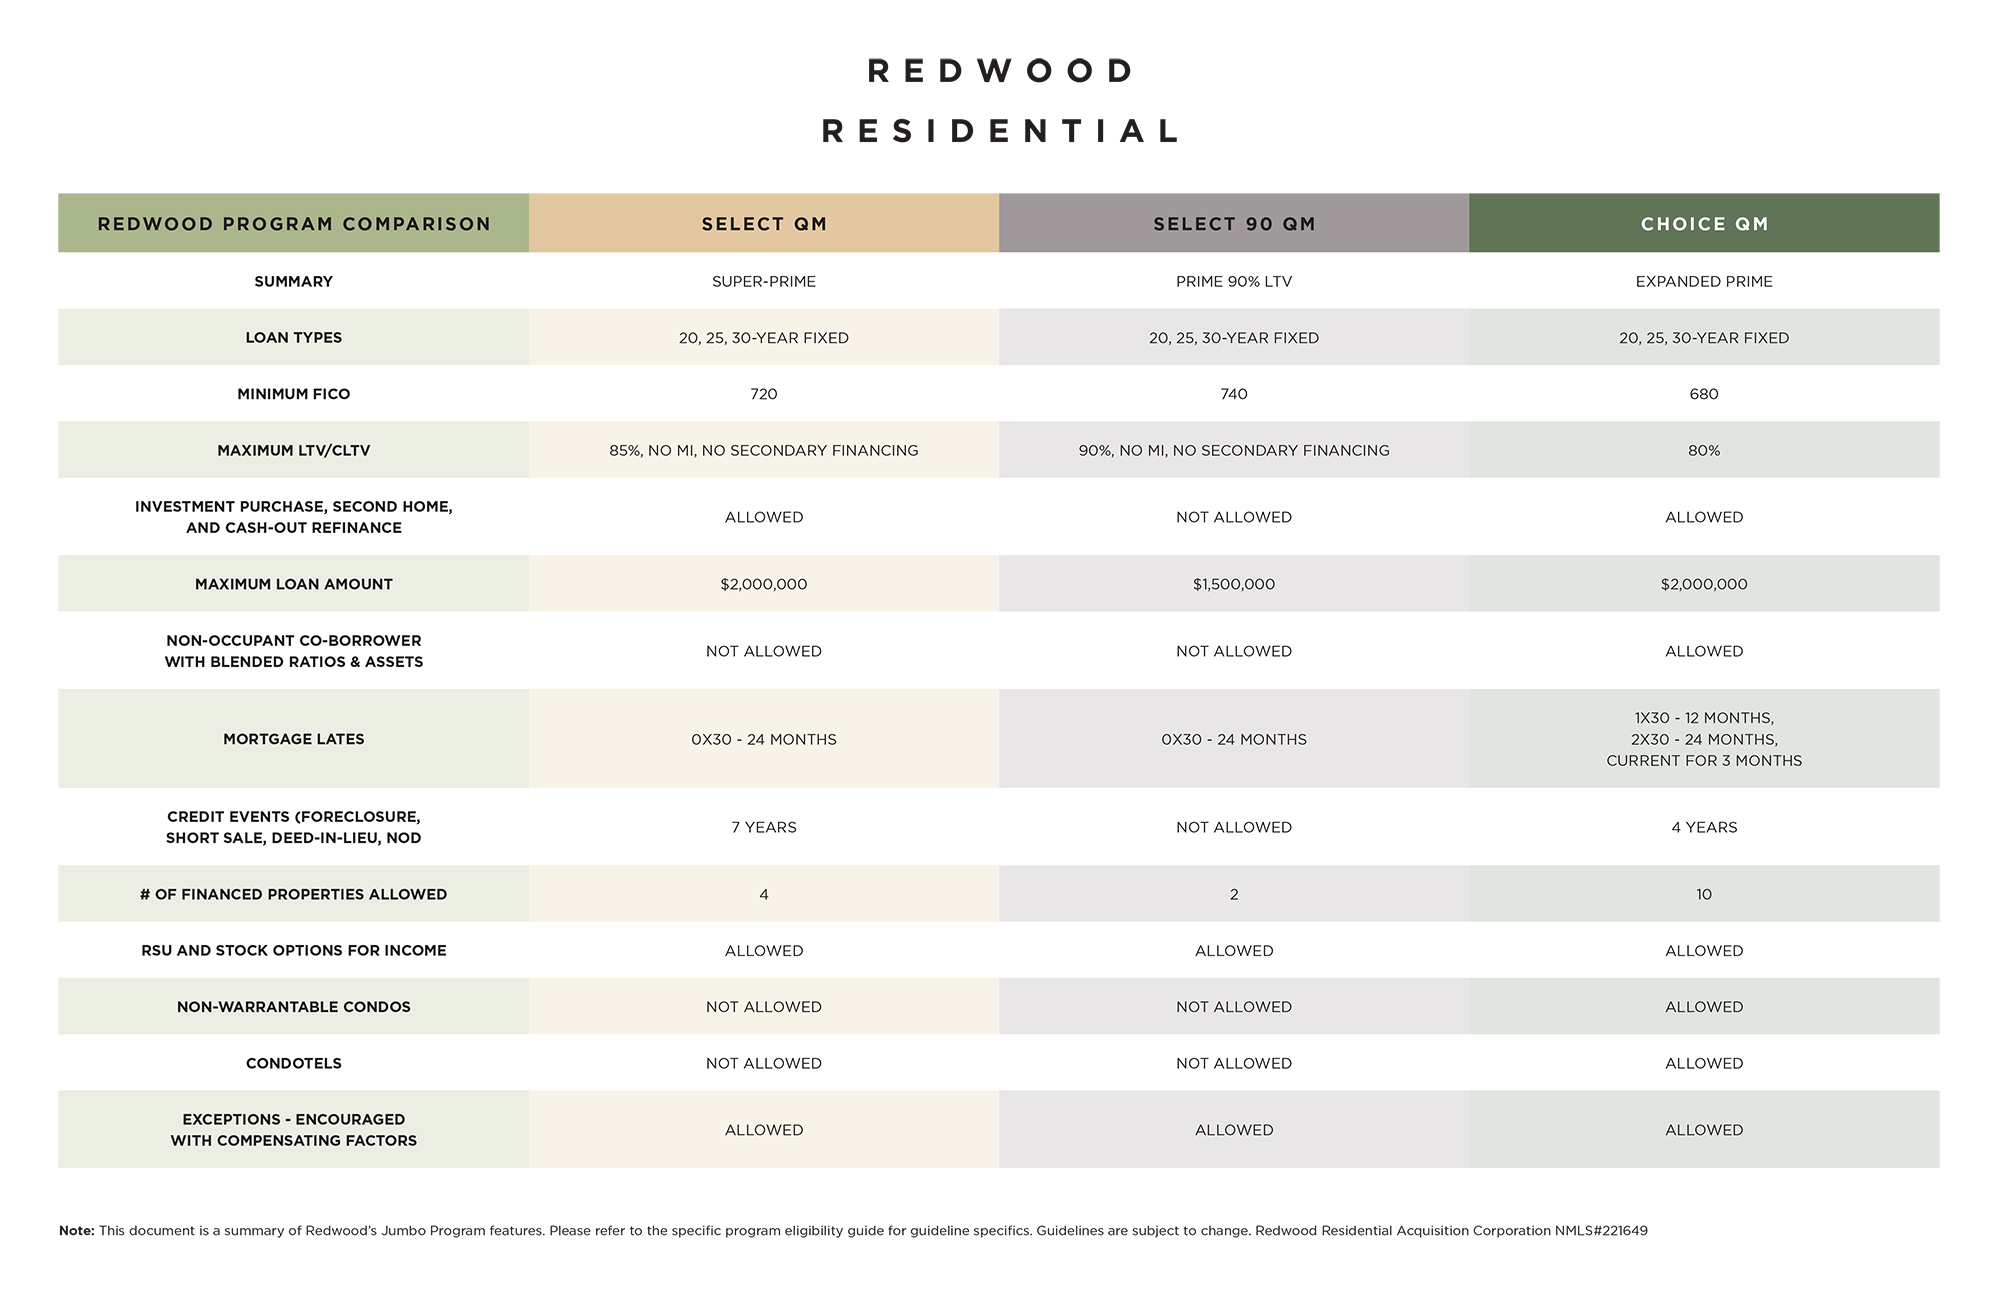 Redwood Trust Program Comparison